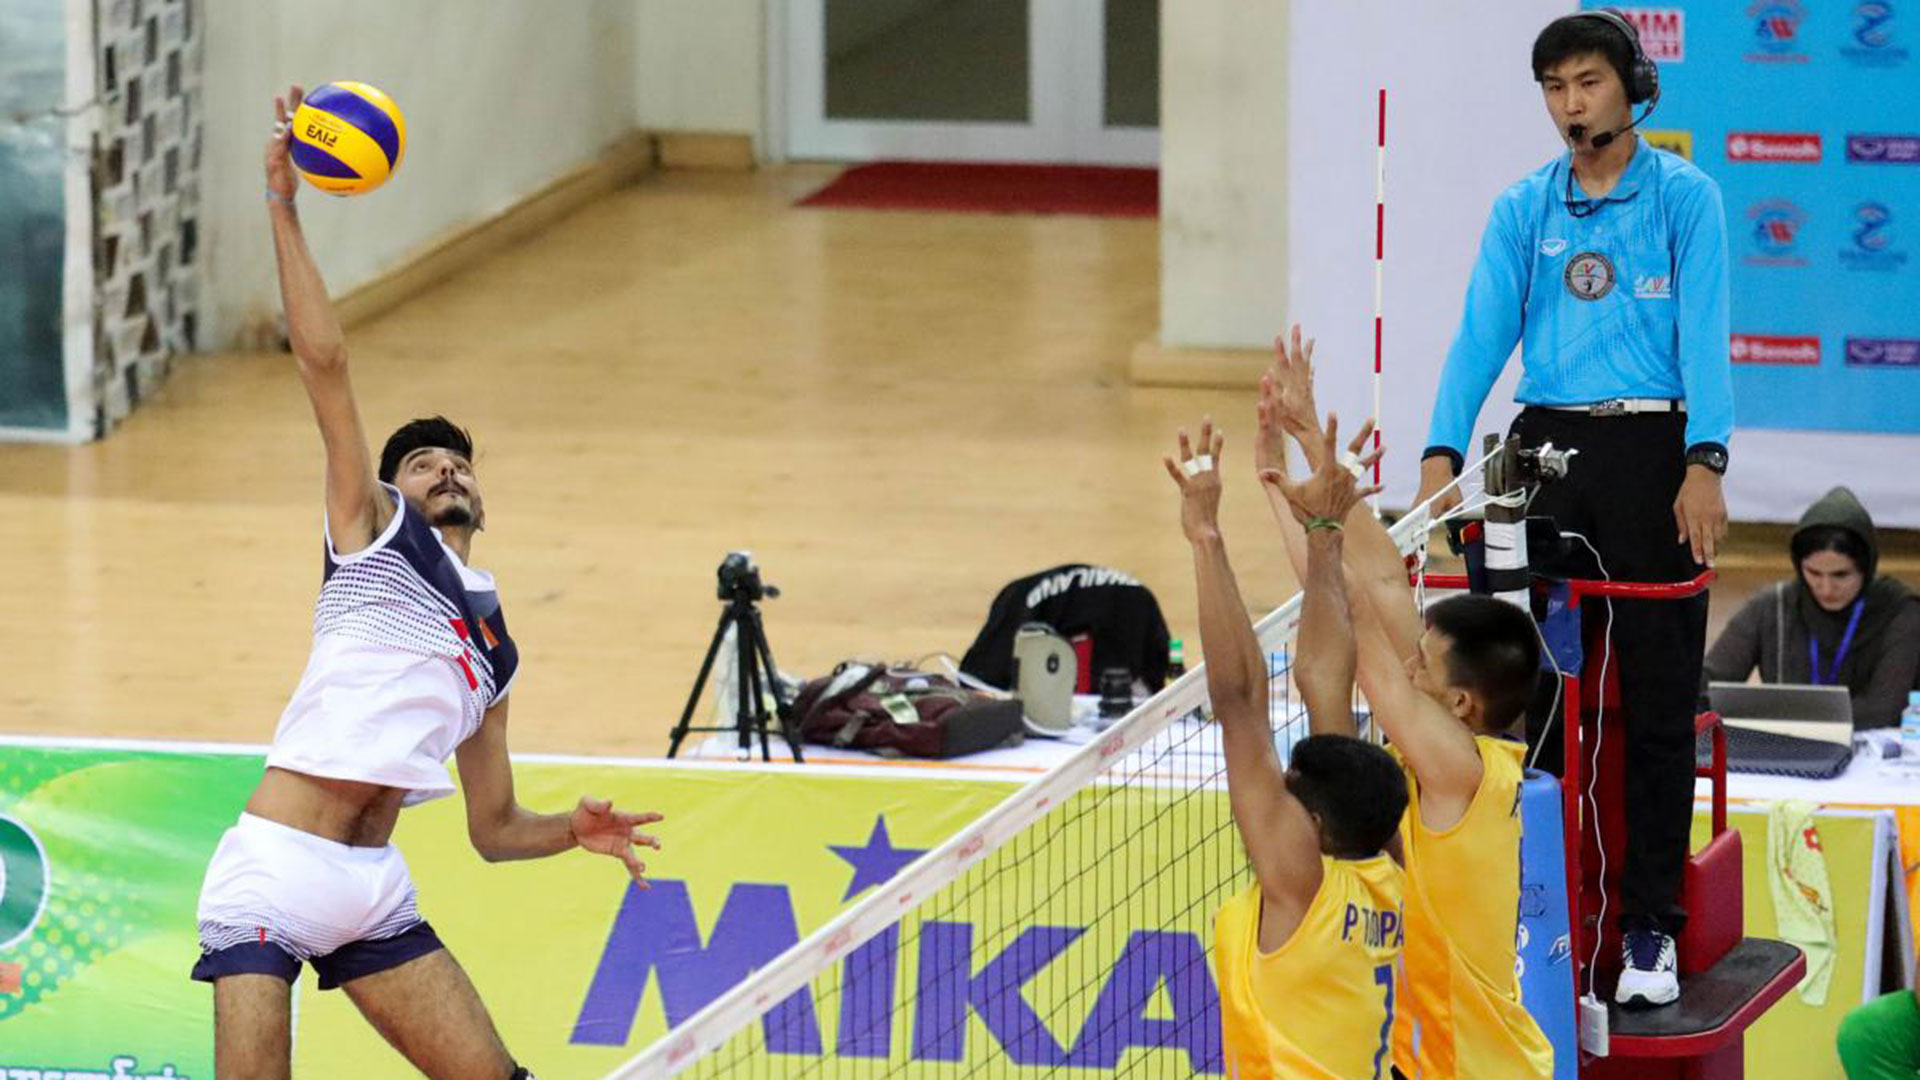 Volleyball S Increasing Popularity In India Volleycountry